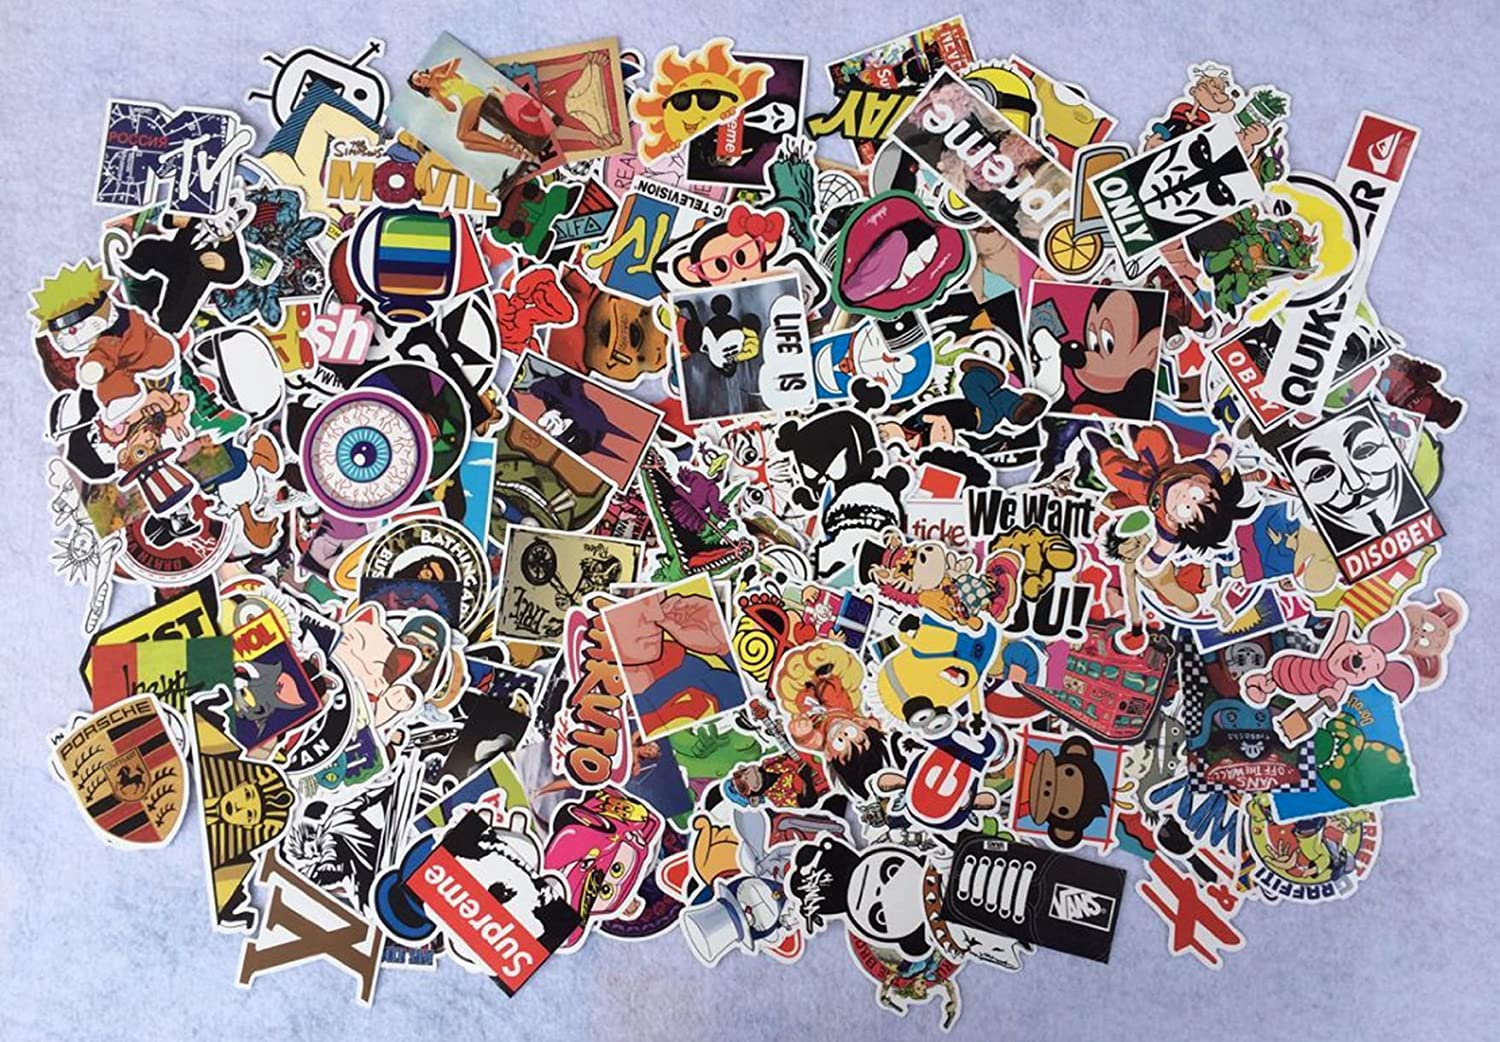 Amazon 400pcs random decal graffiti sticker bomb laptop amazon 400pcs random decal graffiti sticker bomb laptop waterproof stickers skate mix lot toys games amipublicfo Gallery